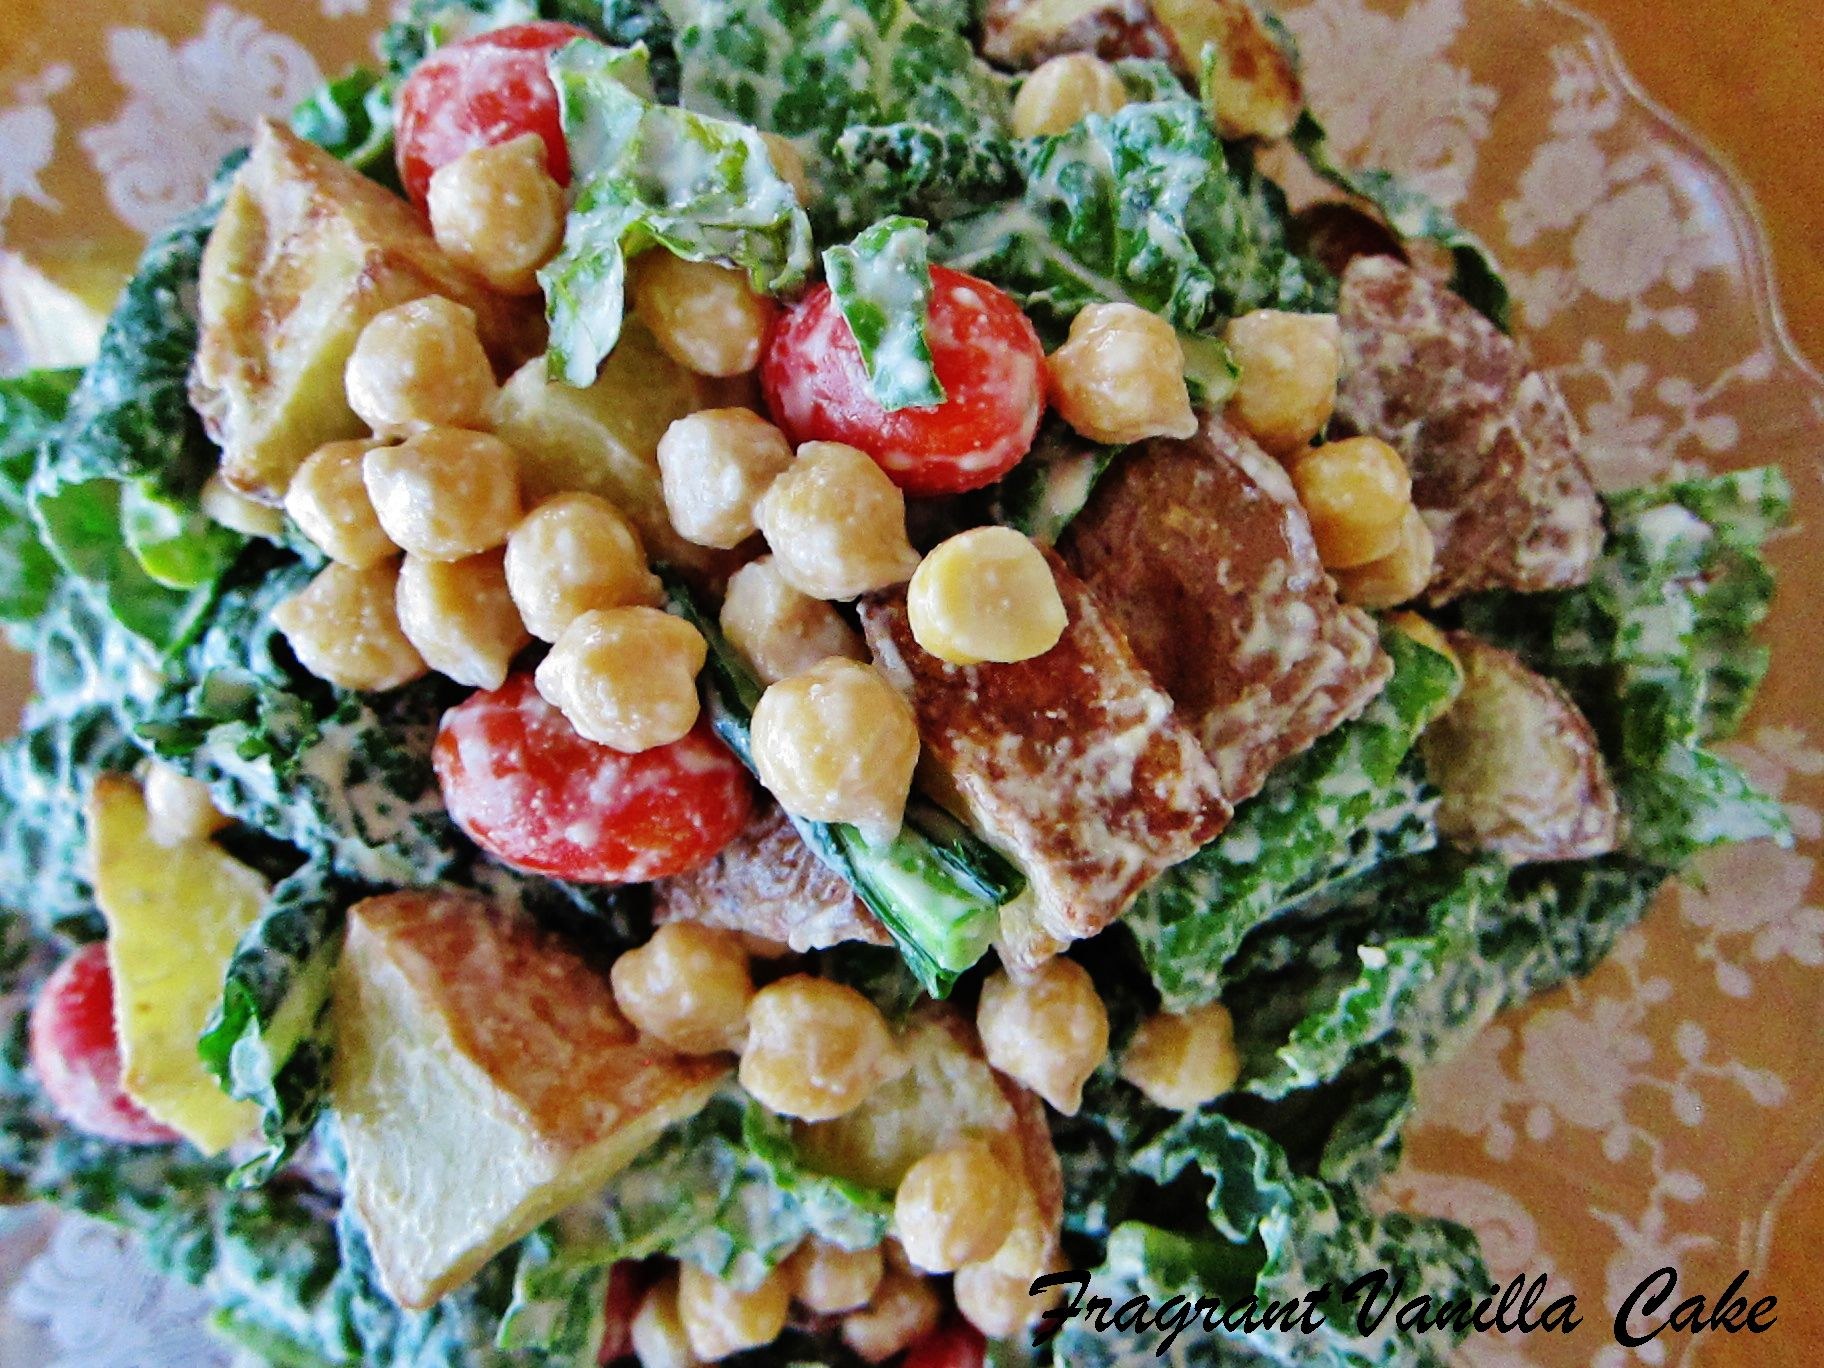 Garlicy kale salad with roasted potatoes and chickpeas